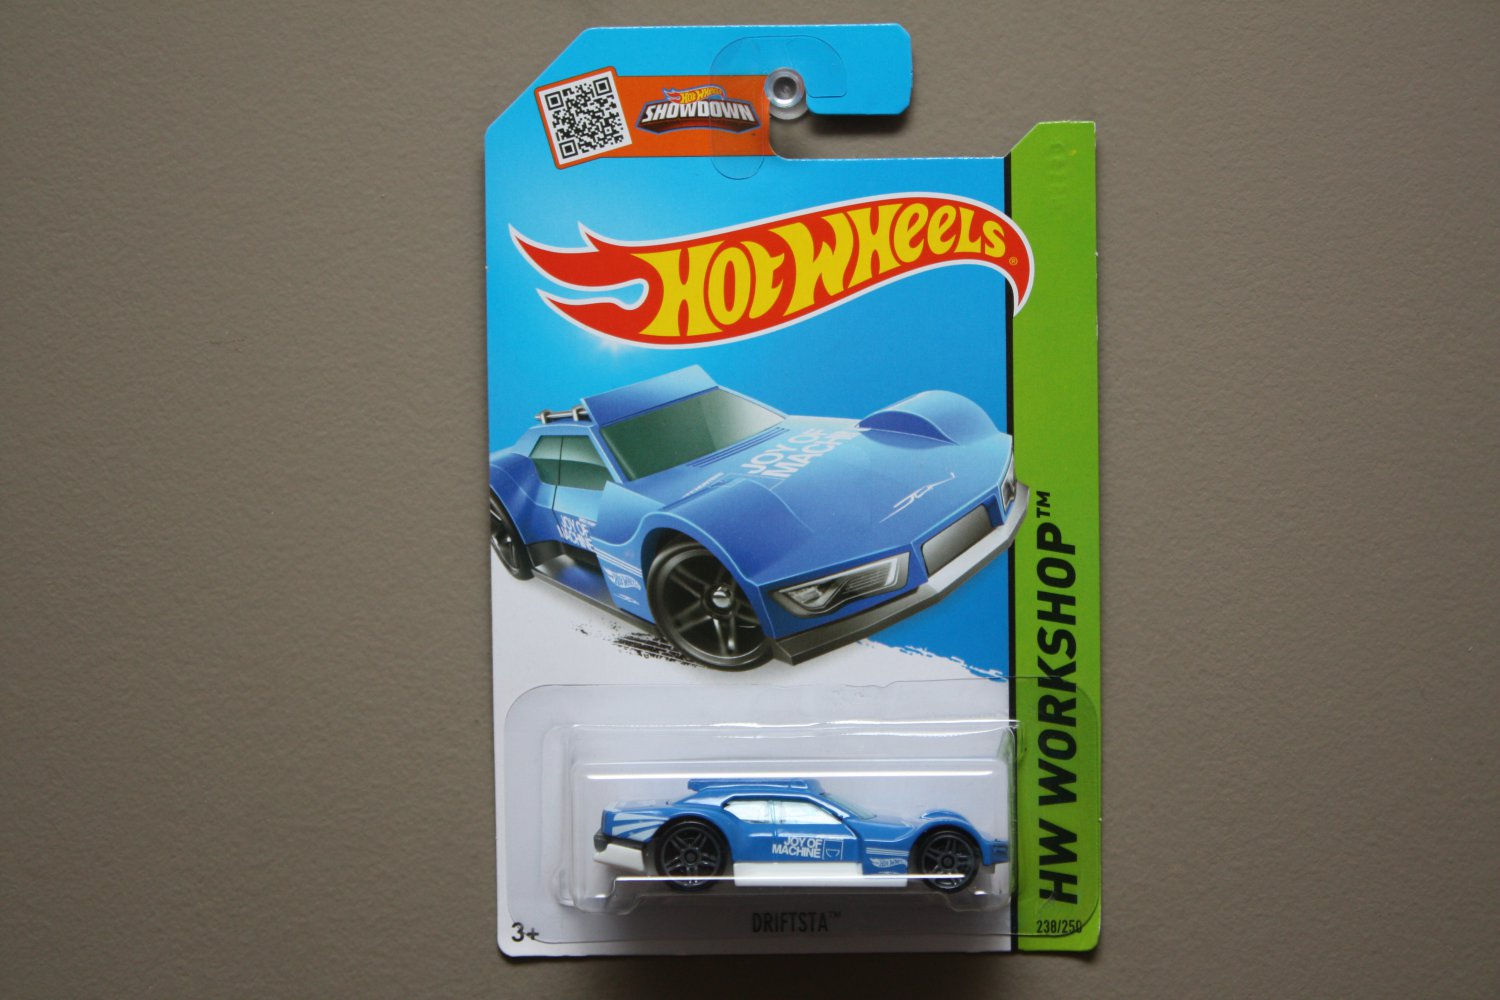 Hot Wheels 2015 HW Workshop Driftsta (blue)